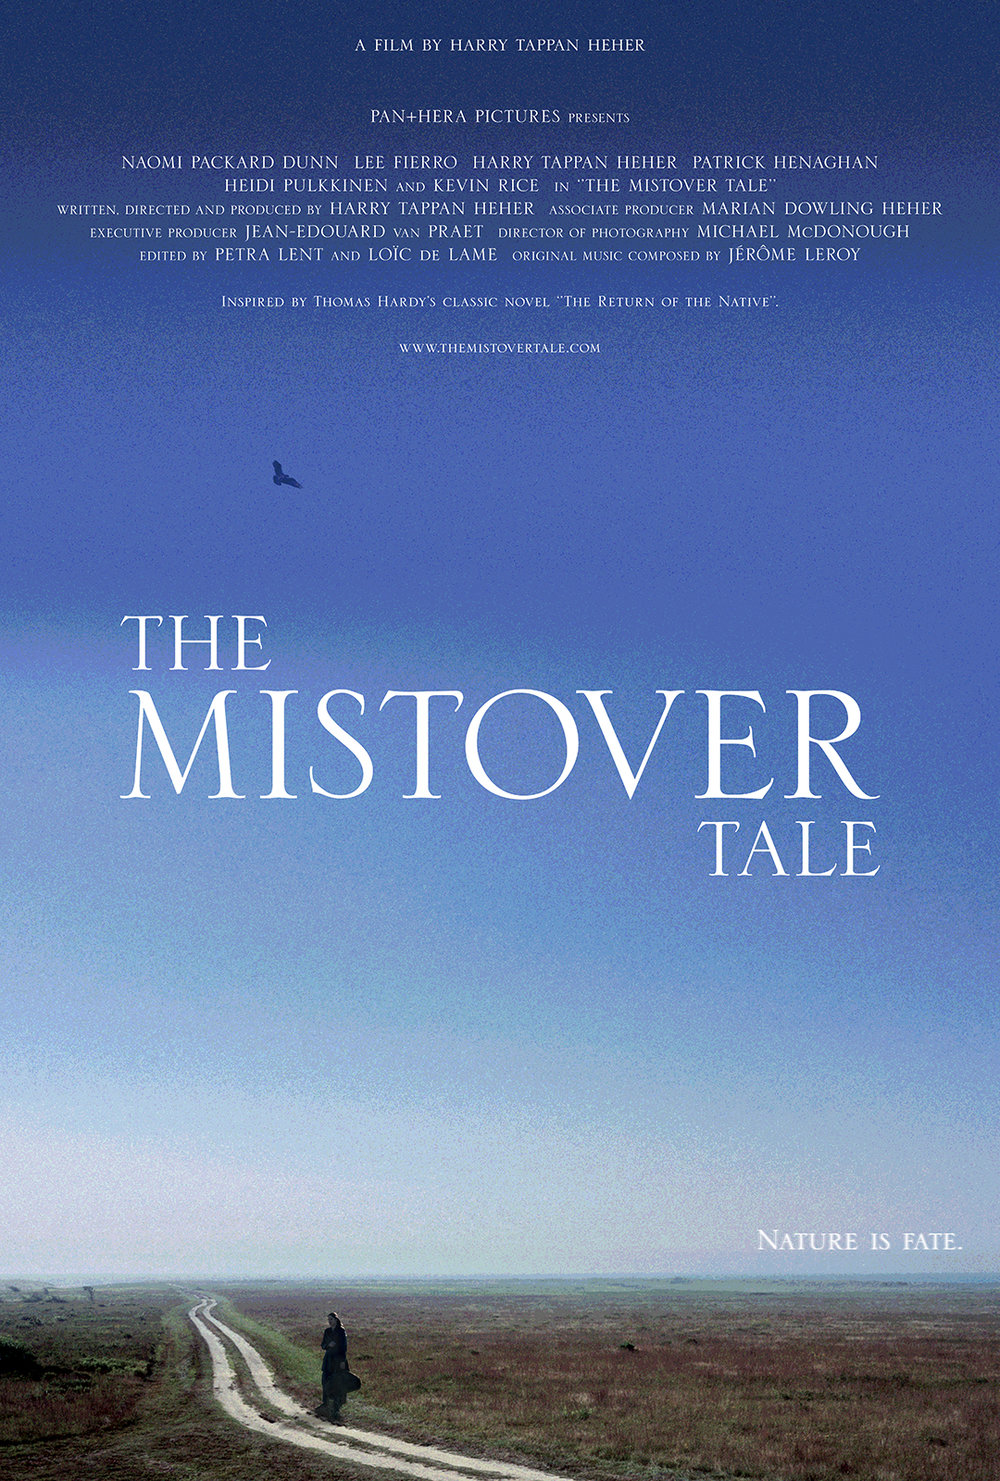 The Mistover Tale - Poster.jpg